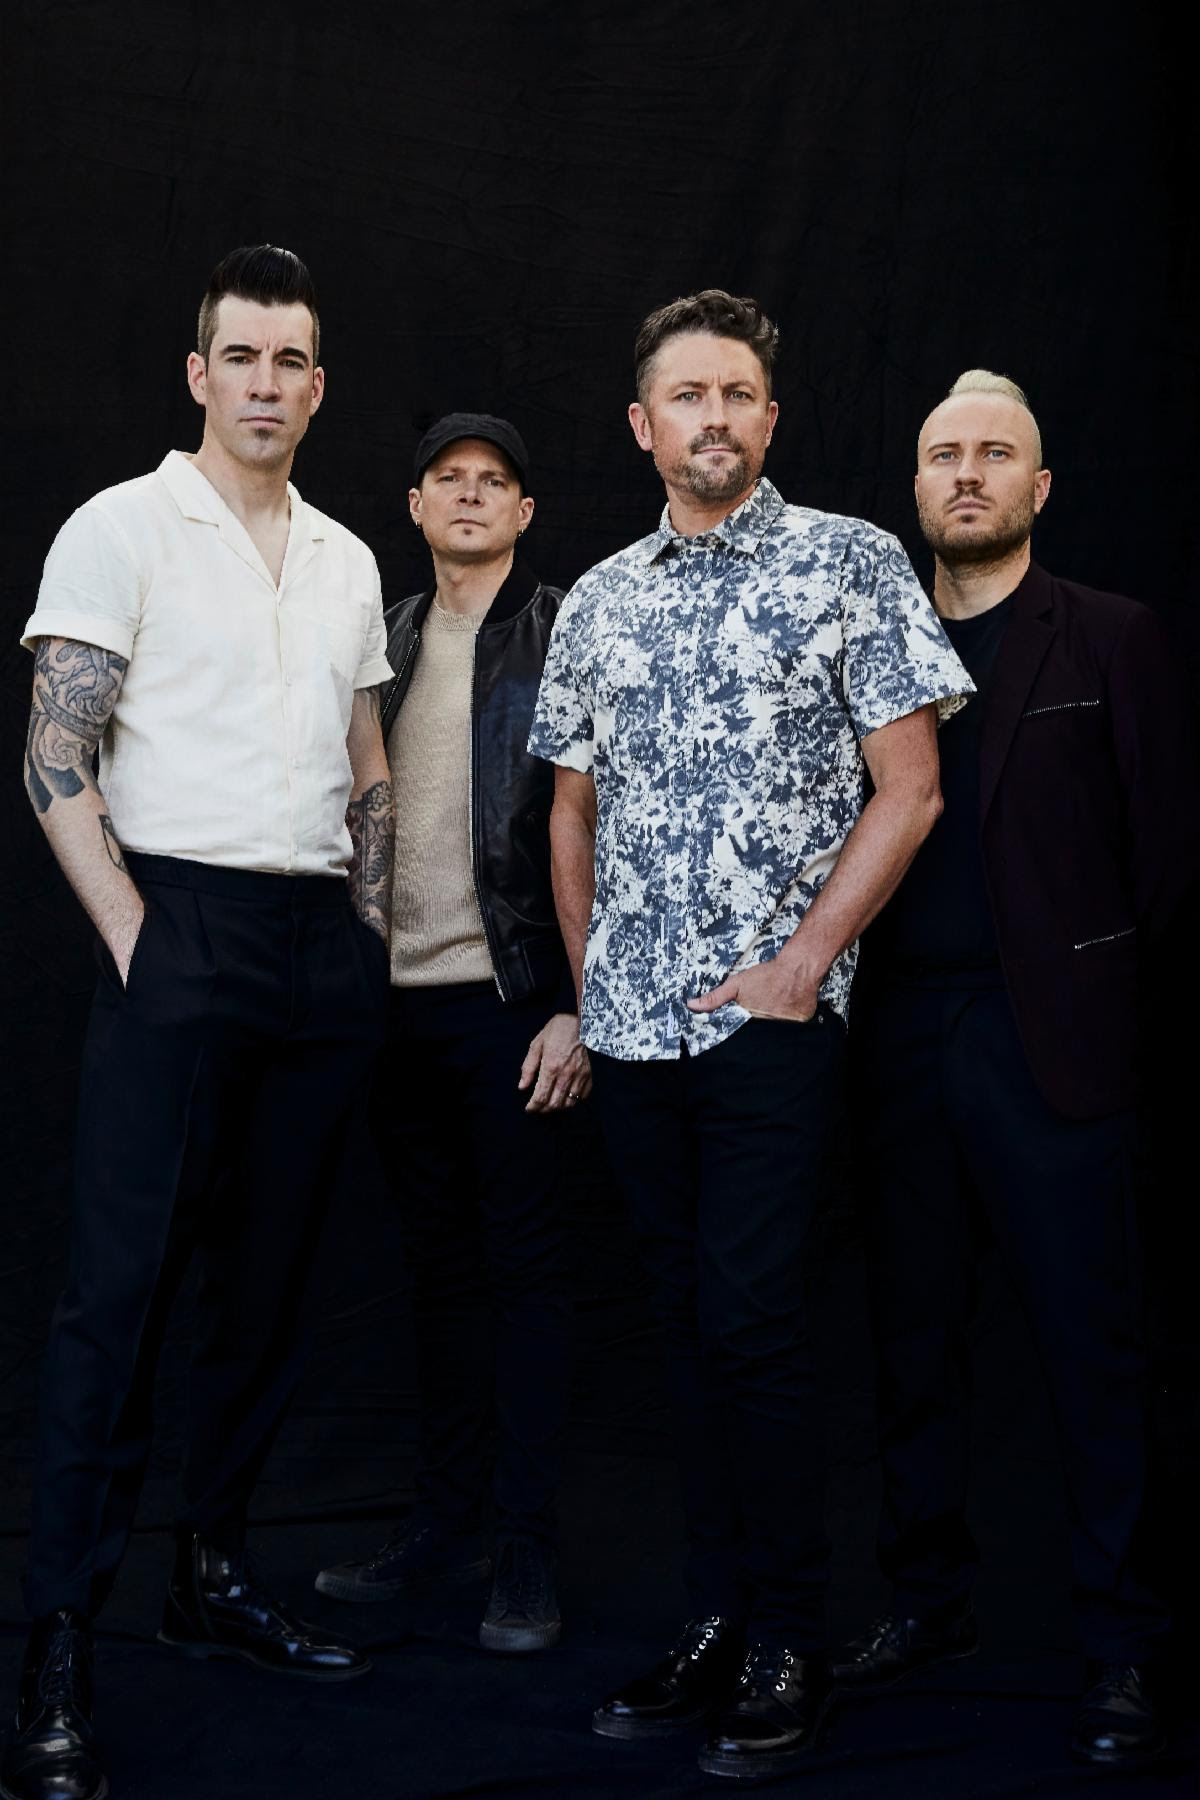 """Theory of a Deadman announce 'Say Nothing' + drop """"History of Violence"""""""